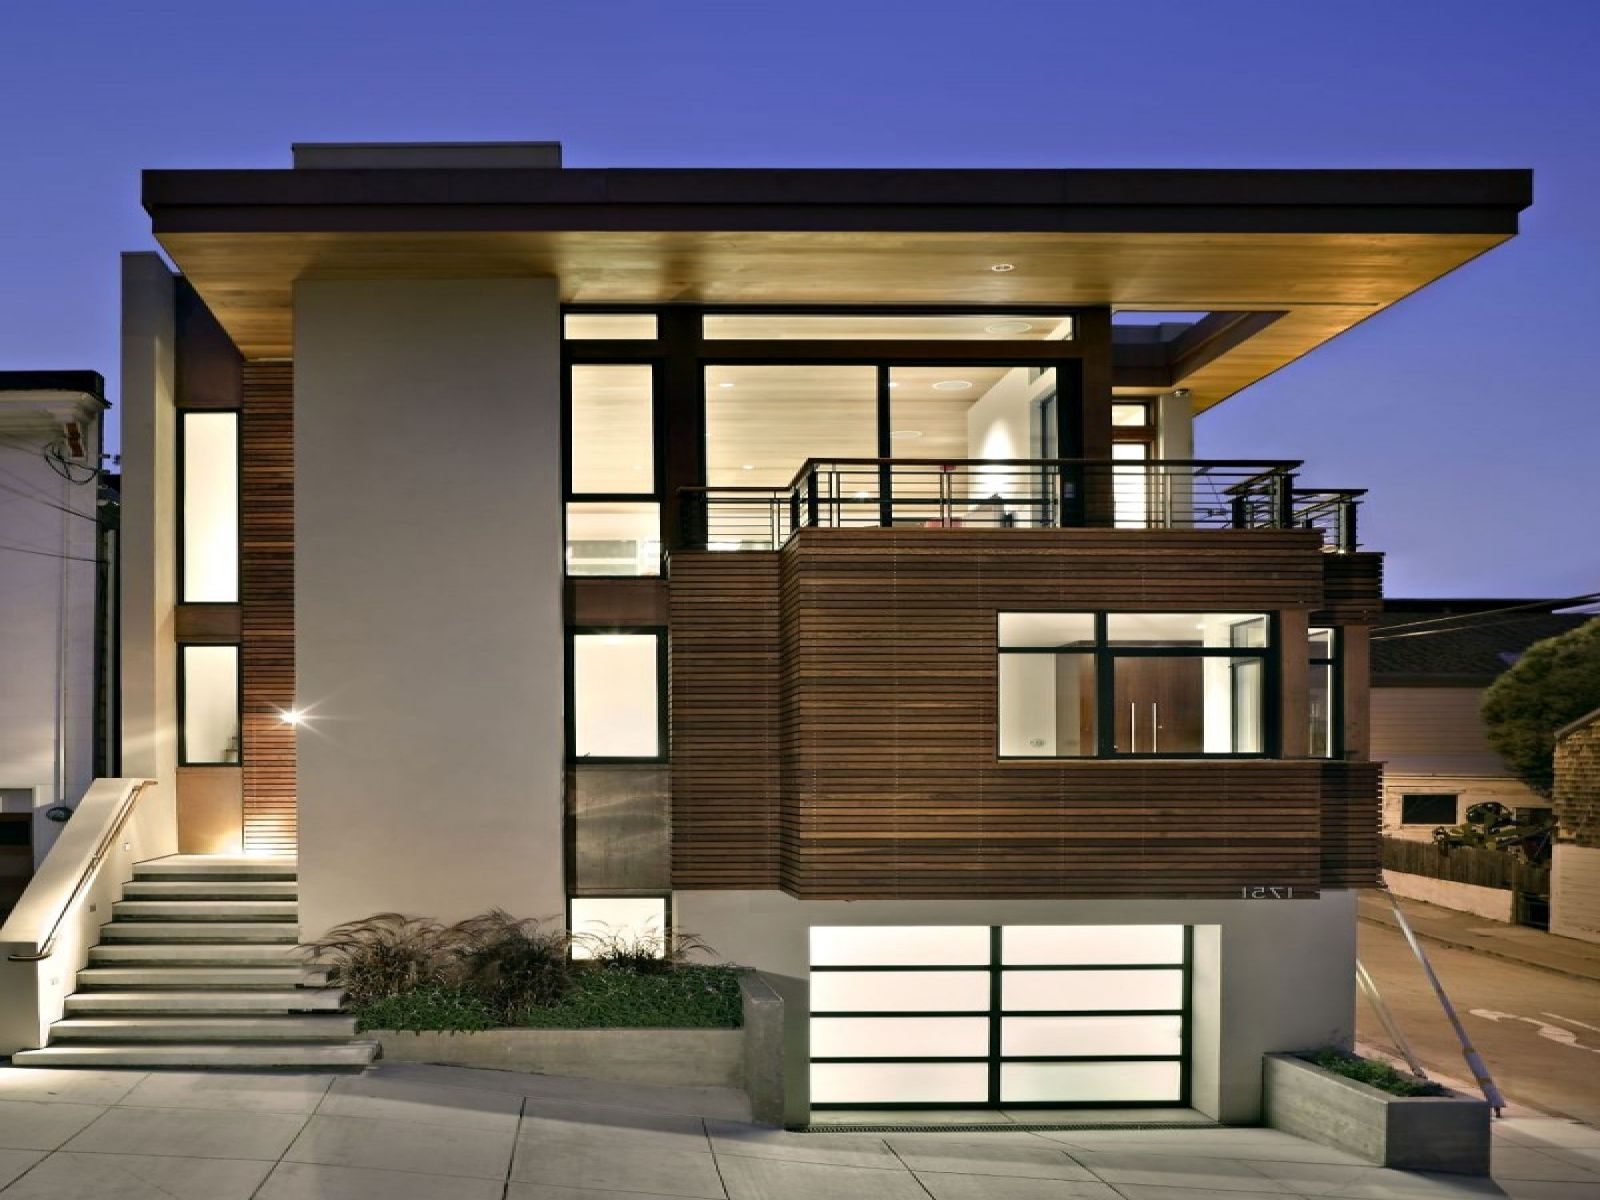 Modern minimalist house beautiful exterior design for for Exterior home designs ideas